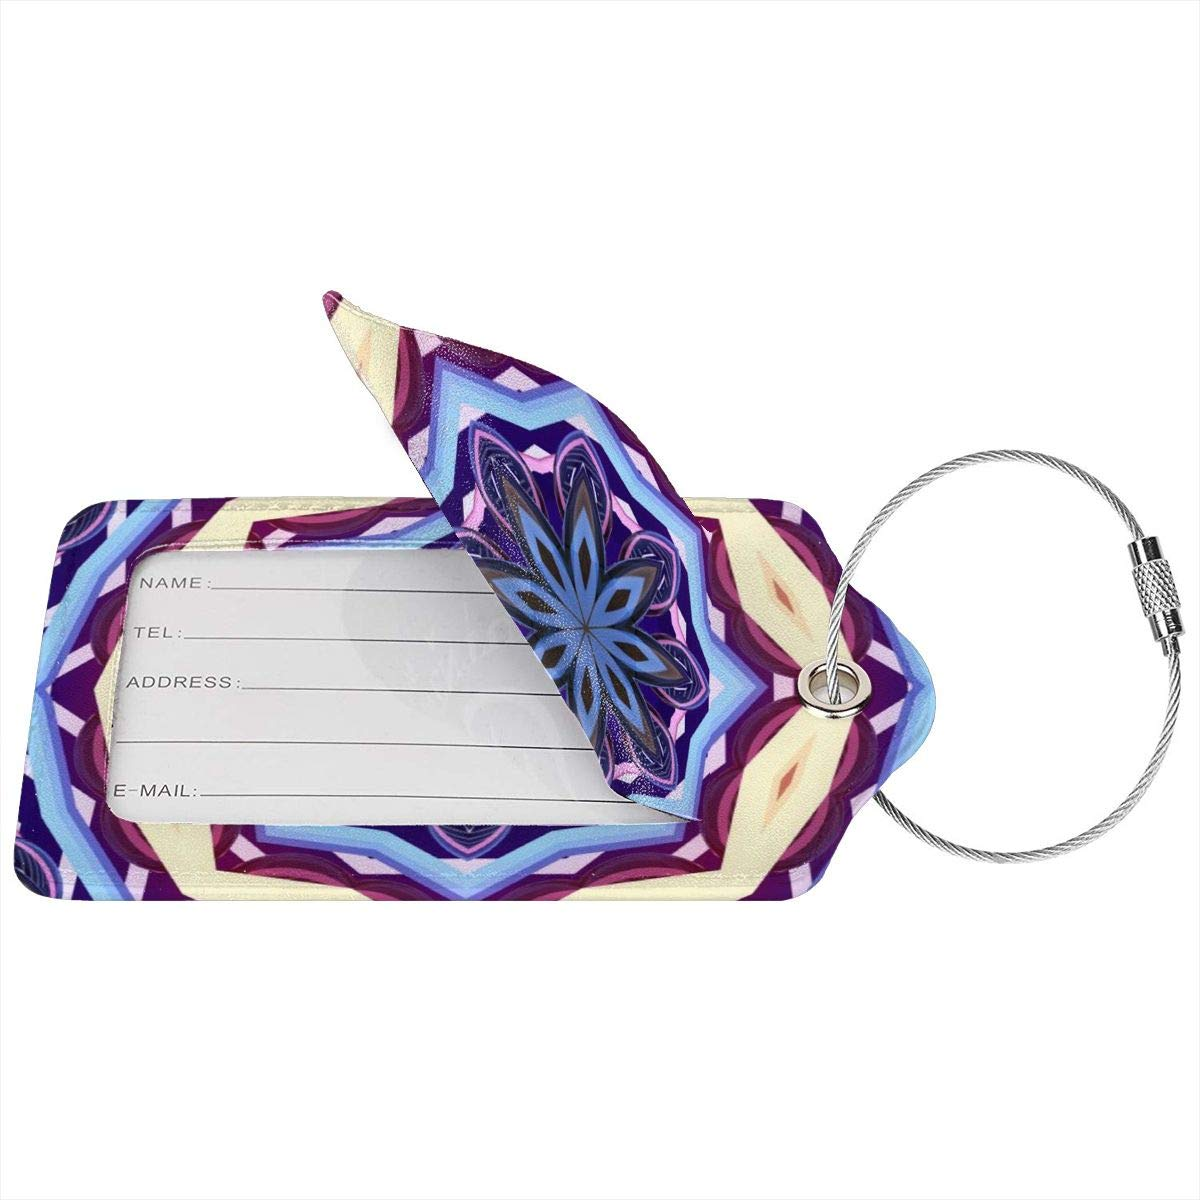 1pcs,2pcs,4pcs Mandala Pattern Pu Leather Double Sides Print Luggage Tag Mutilple Packs